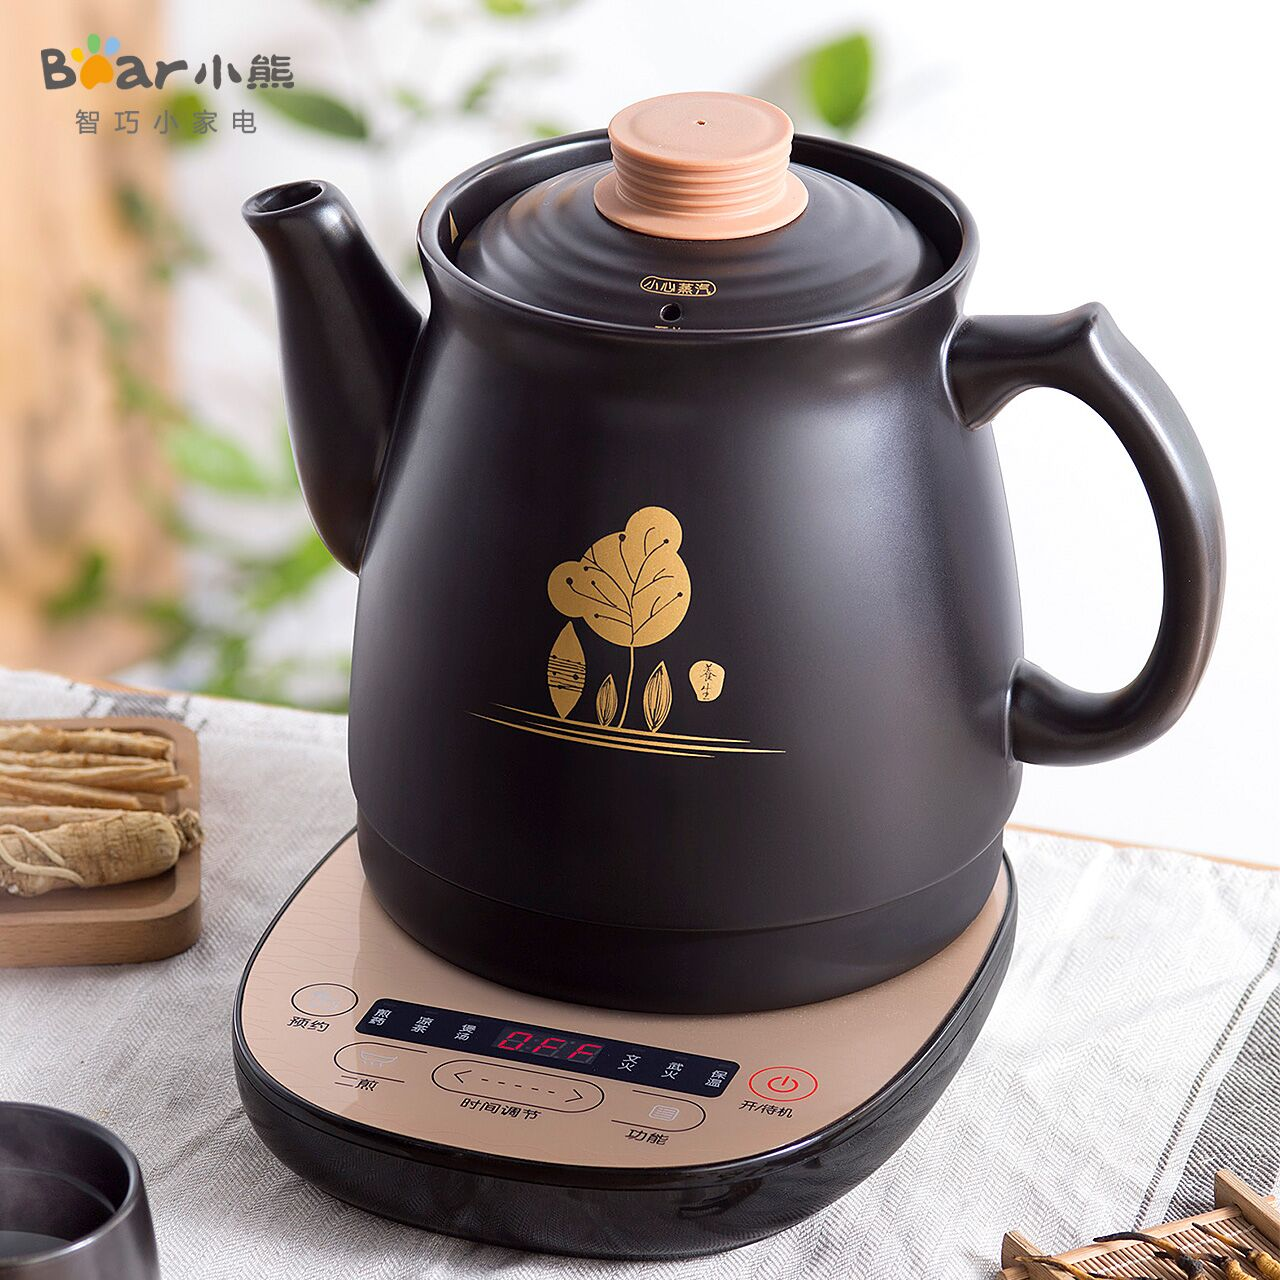 X31 3LAutomatic ceramics Electric Kettle Health Preserving Pot Chinese medicine jar Anti-dry protect heat preservation no cup x32 3 5l automatic electric kettle ceramics boil herb pot porcelain health preserving pot easy to clean microcomputer control